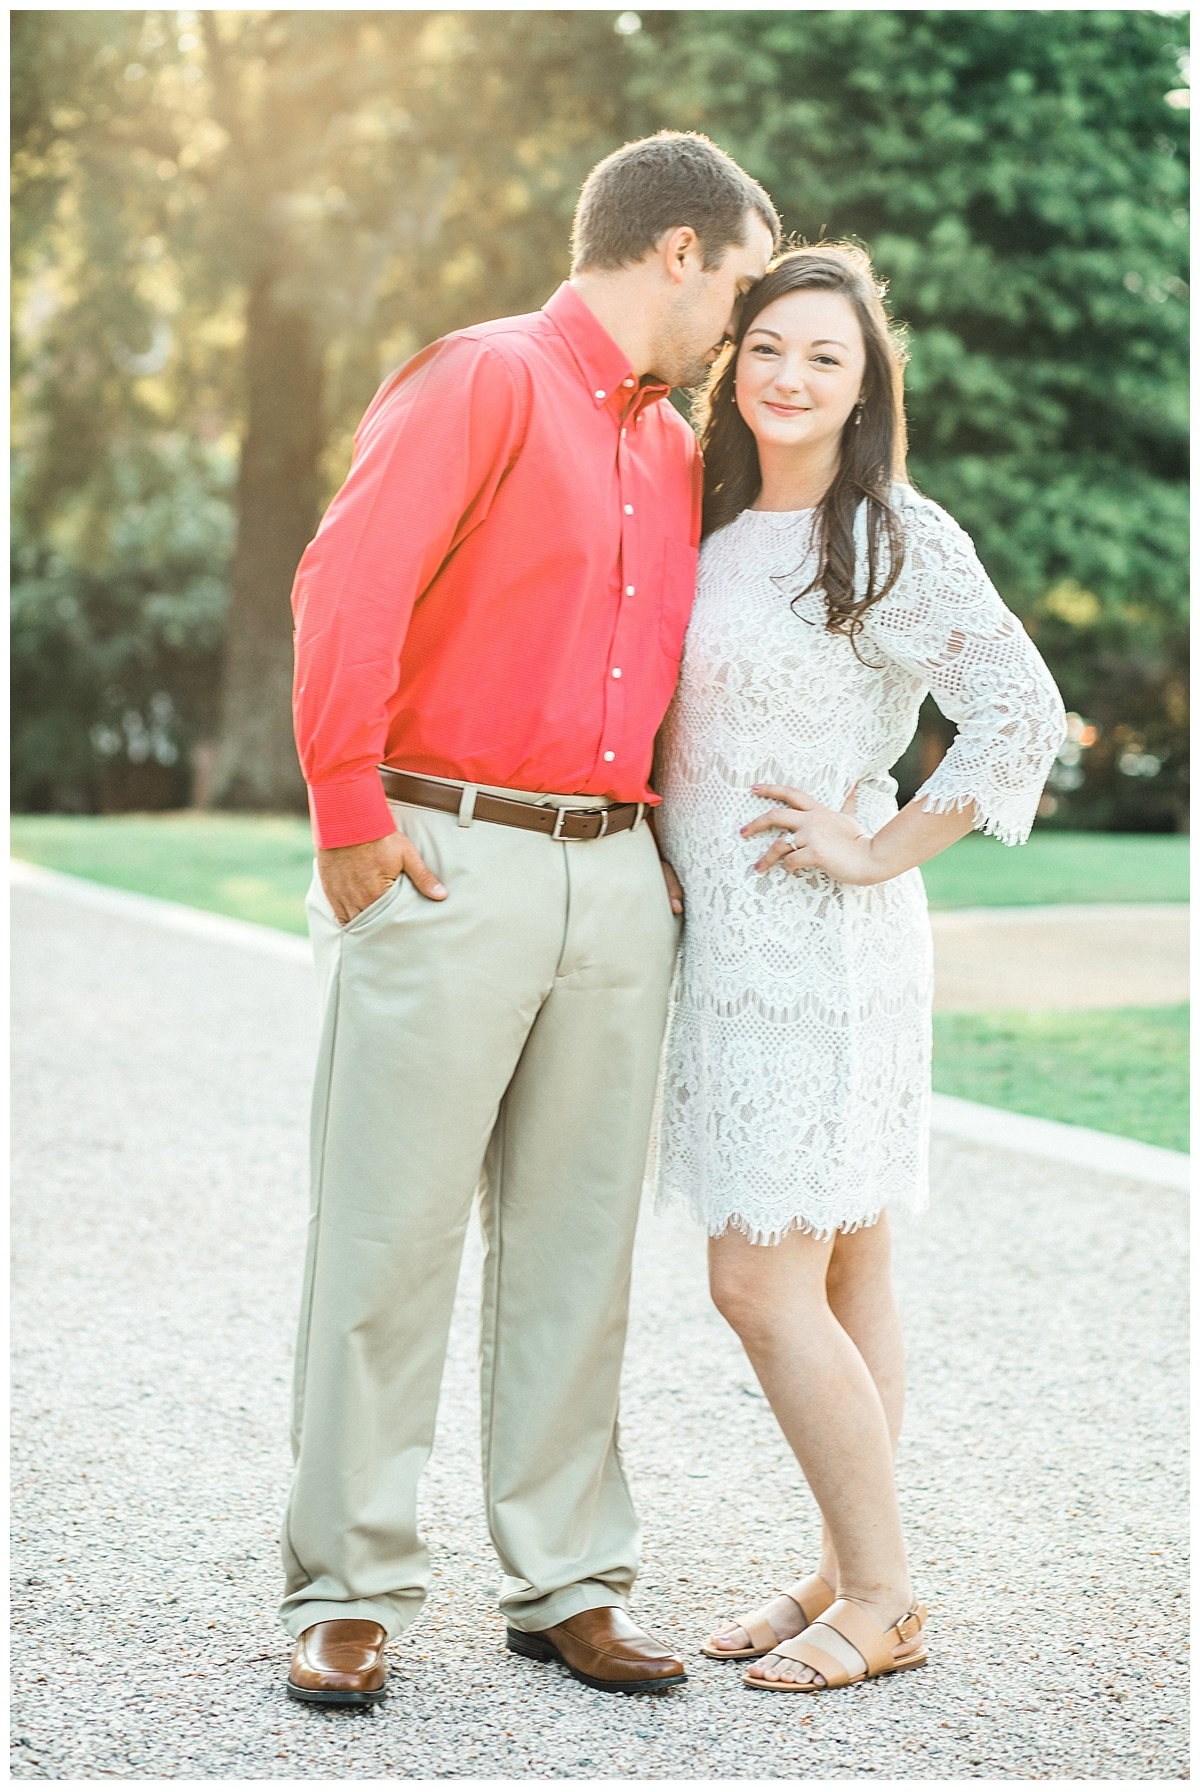 NC-STATE-UNIVERSITY-RALEIGH-NC-ENGAGEMENT-SESSSION-3